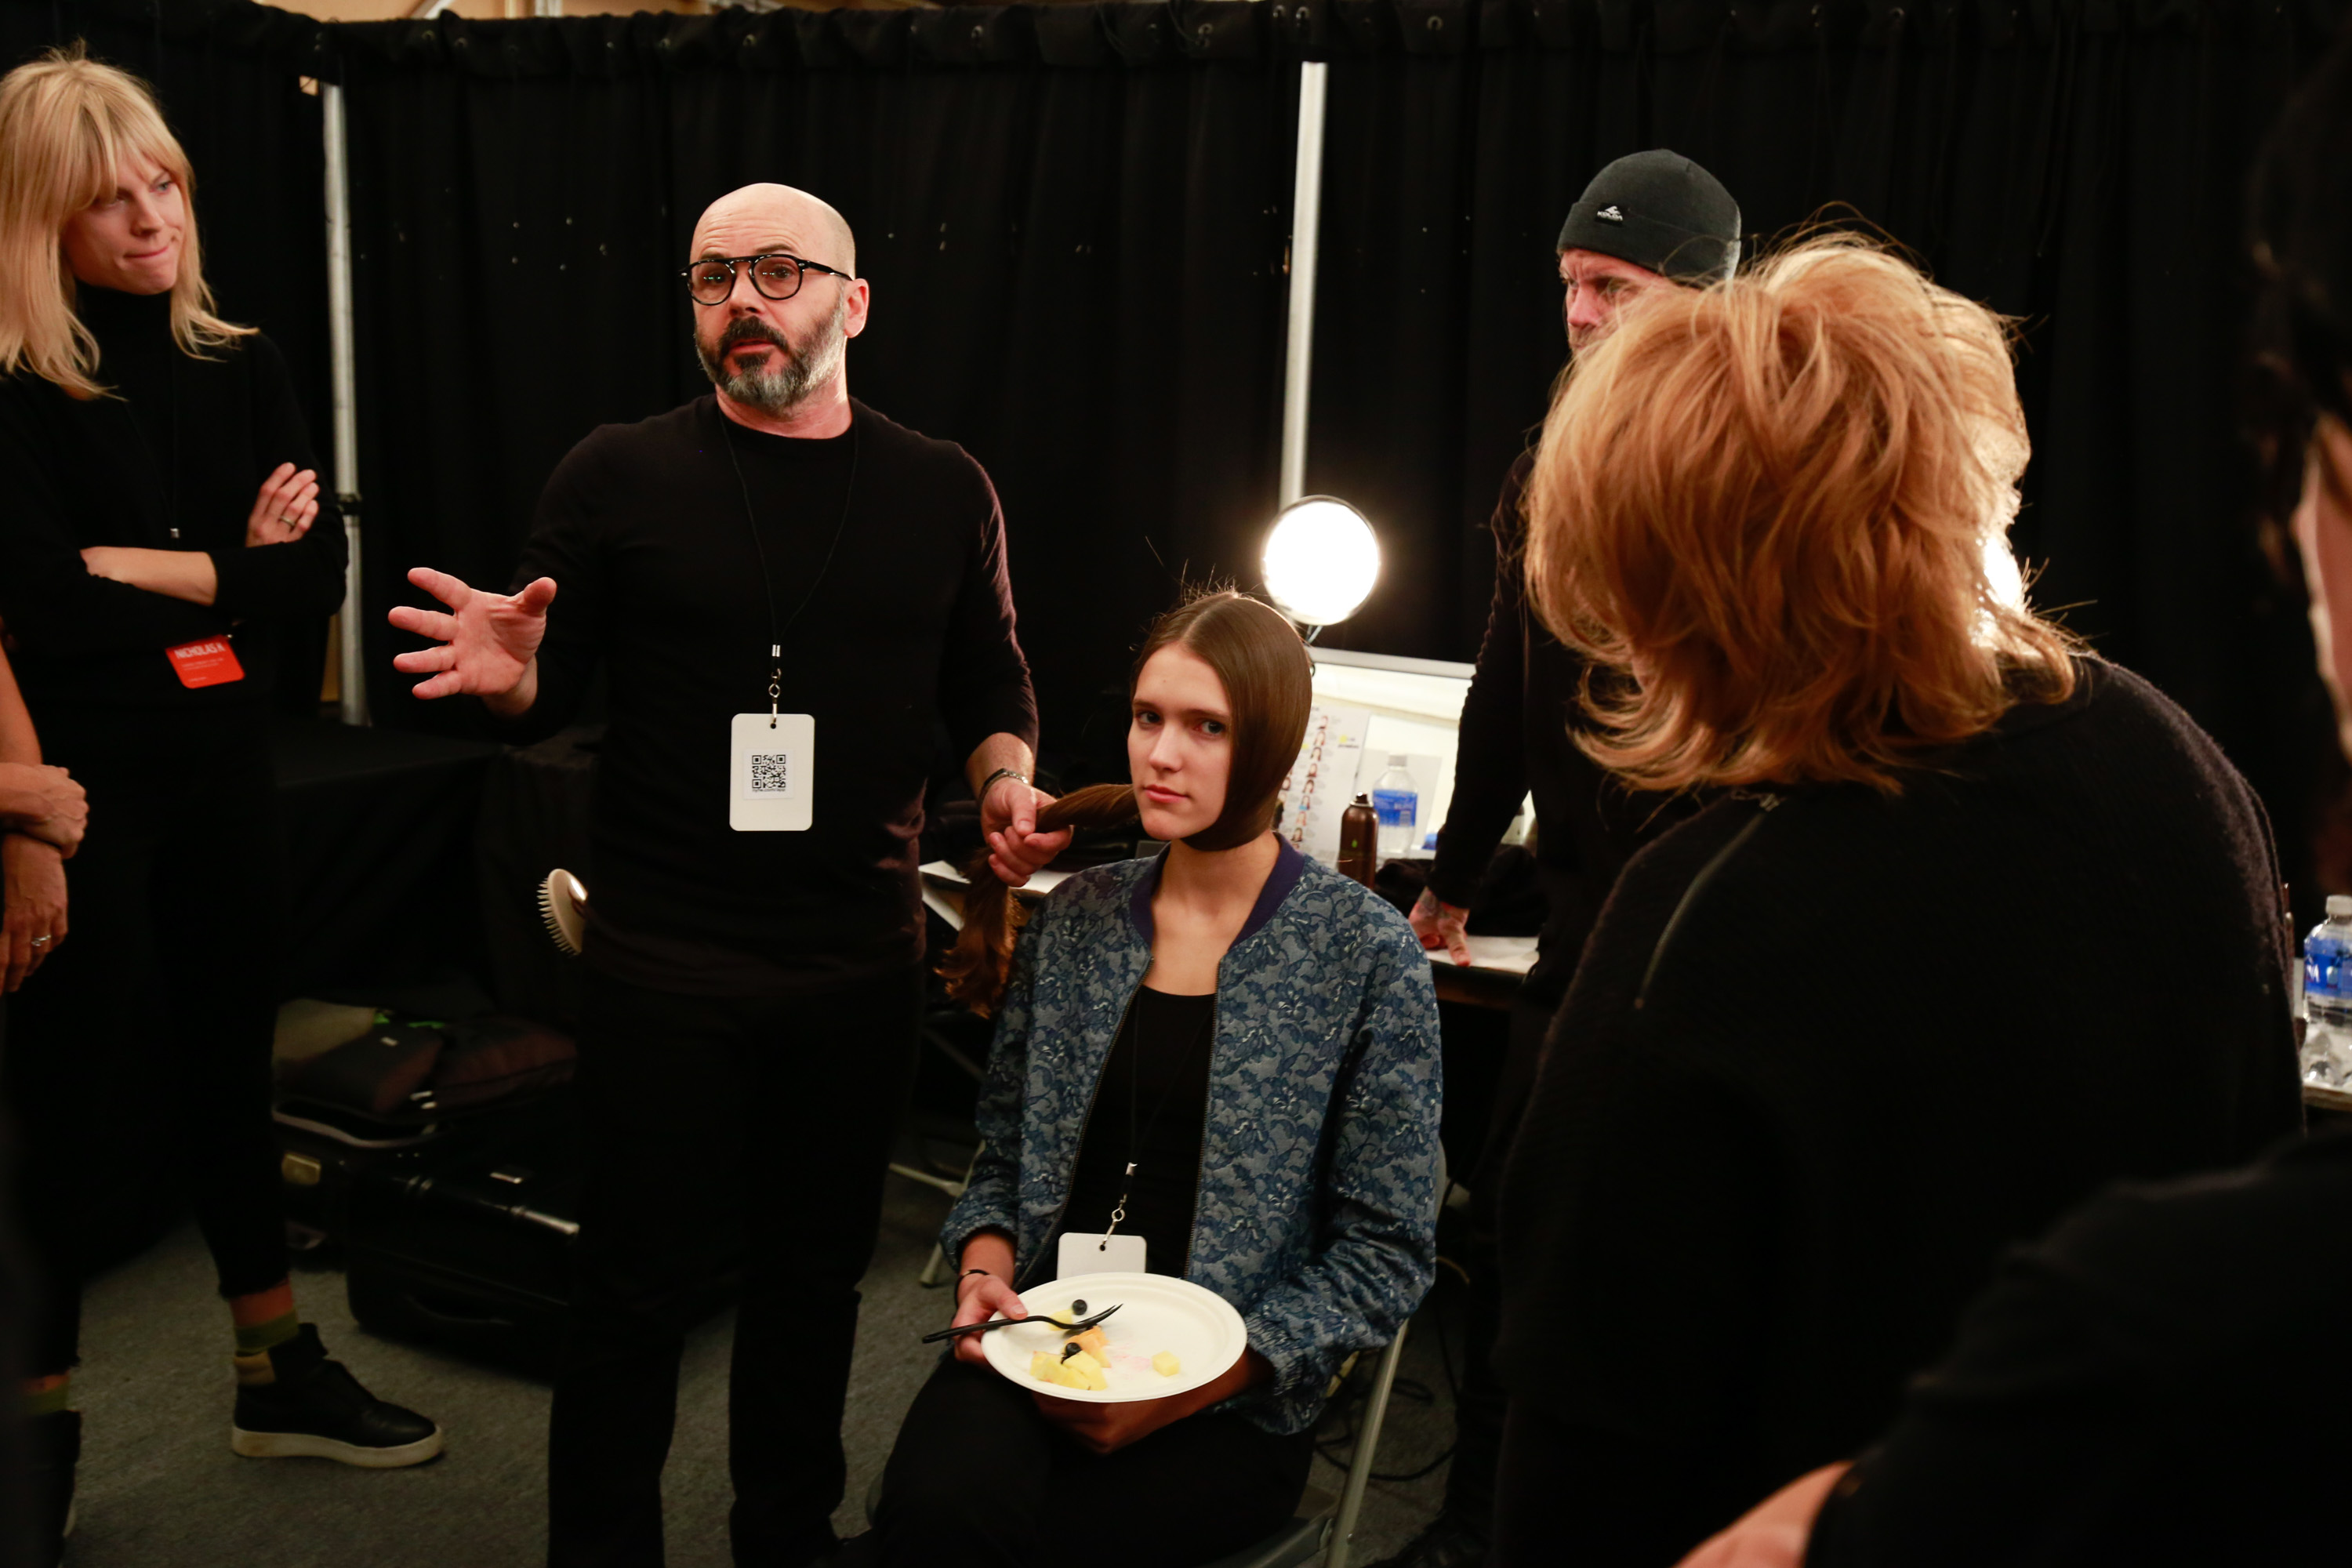 Giannandrea and members of the Macadamia Education Team discuss the finished look prior to the Nicholas K show at February 2016 NYFW.